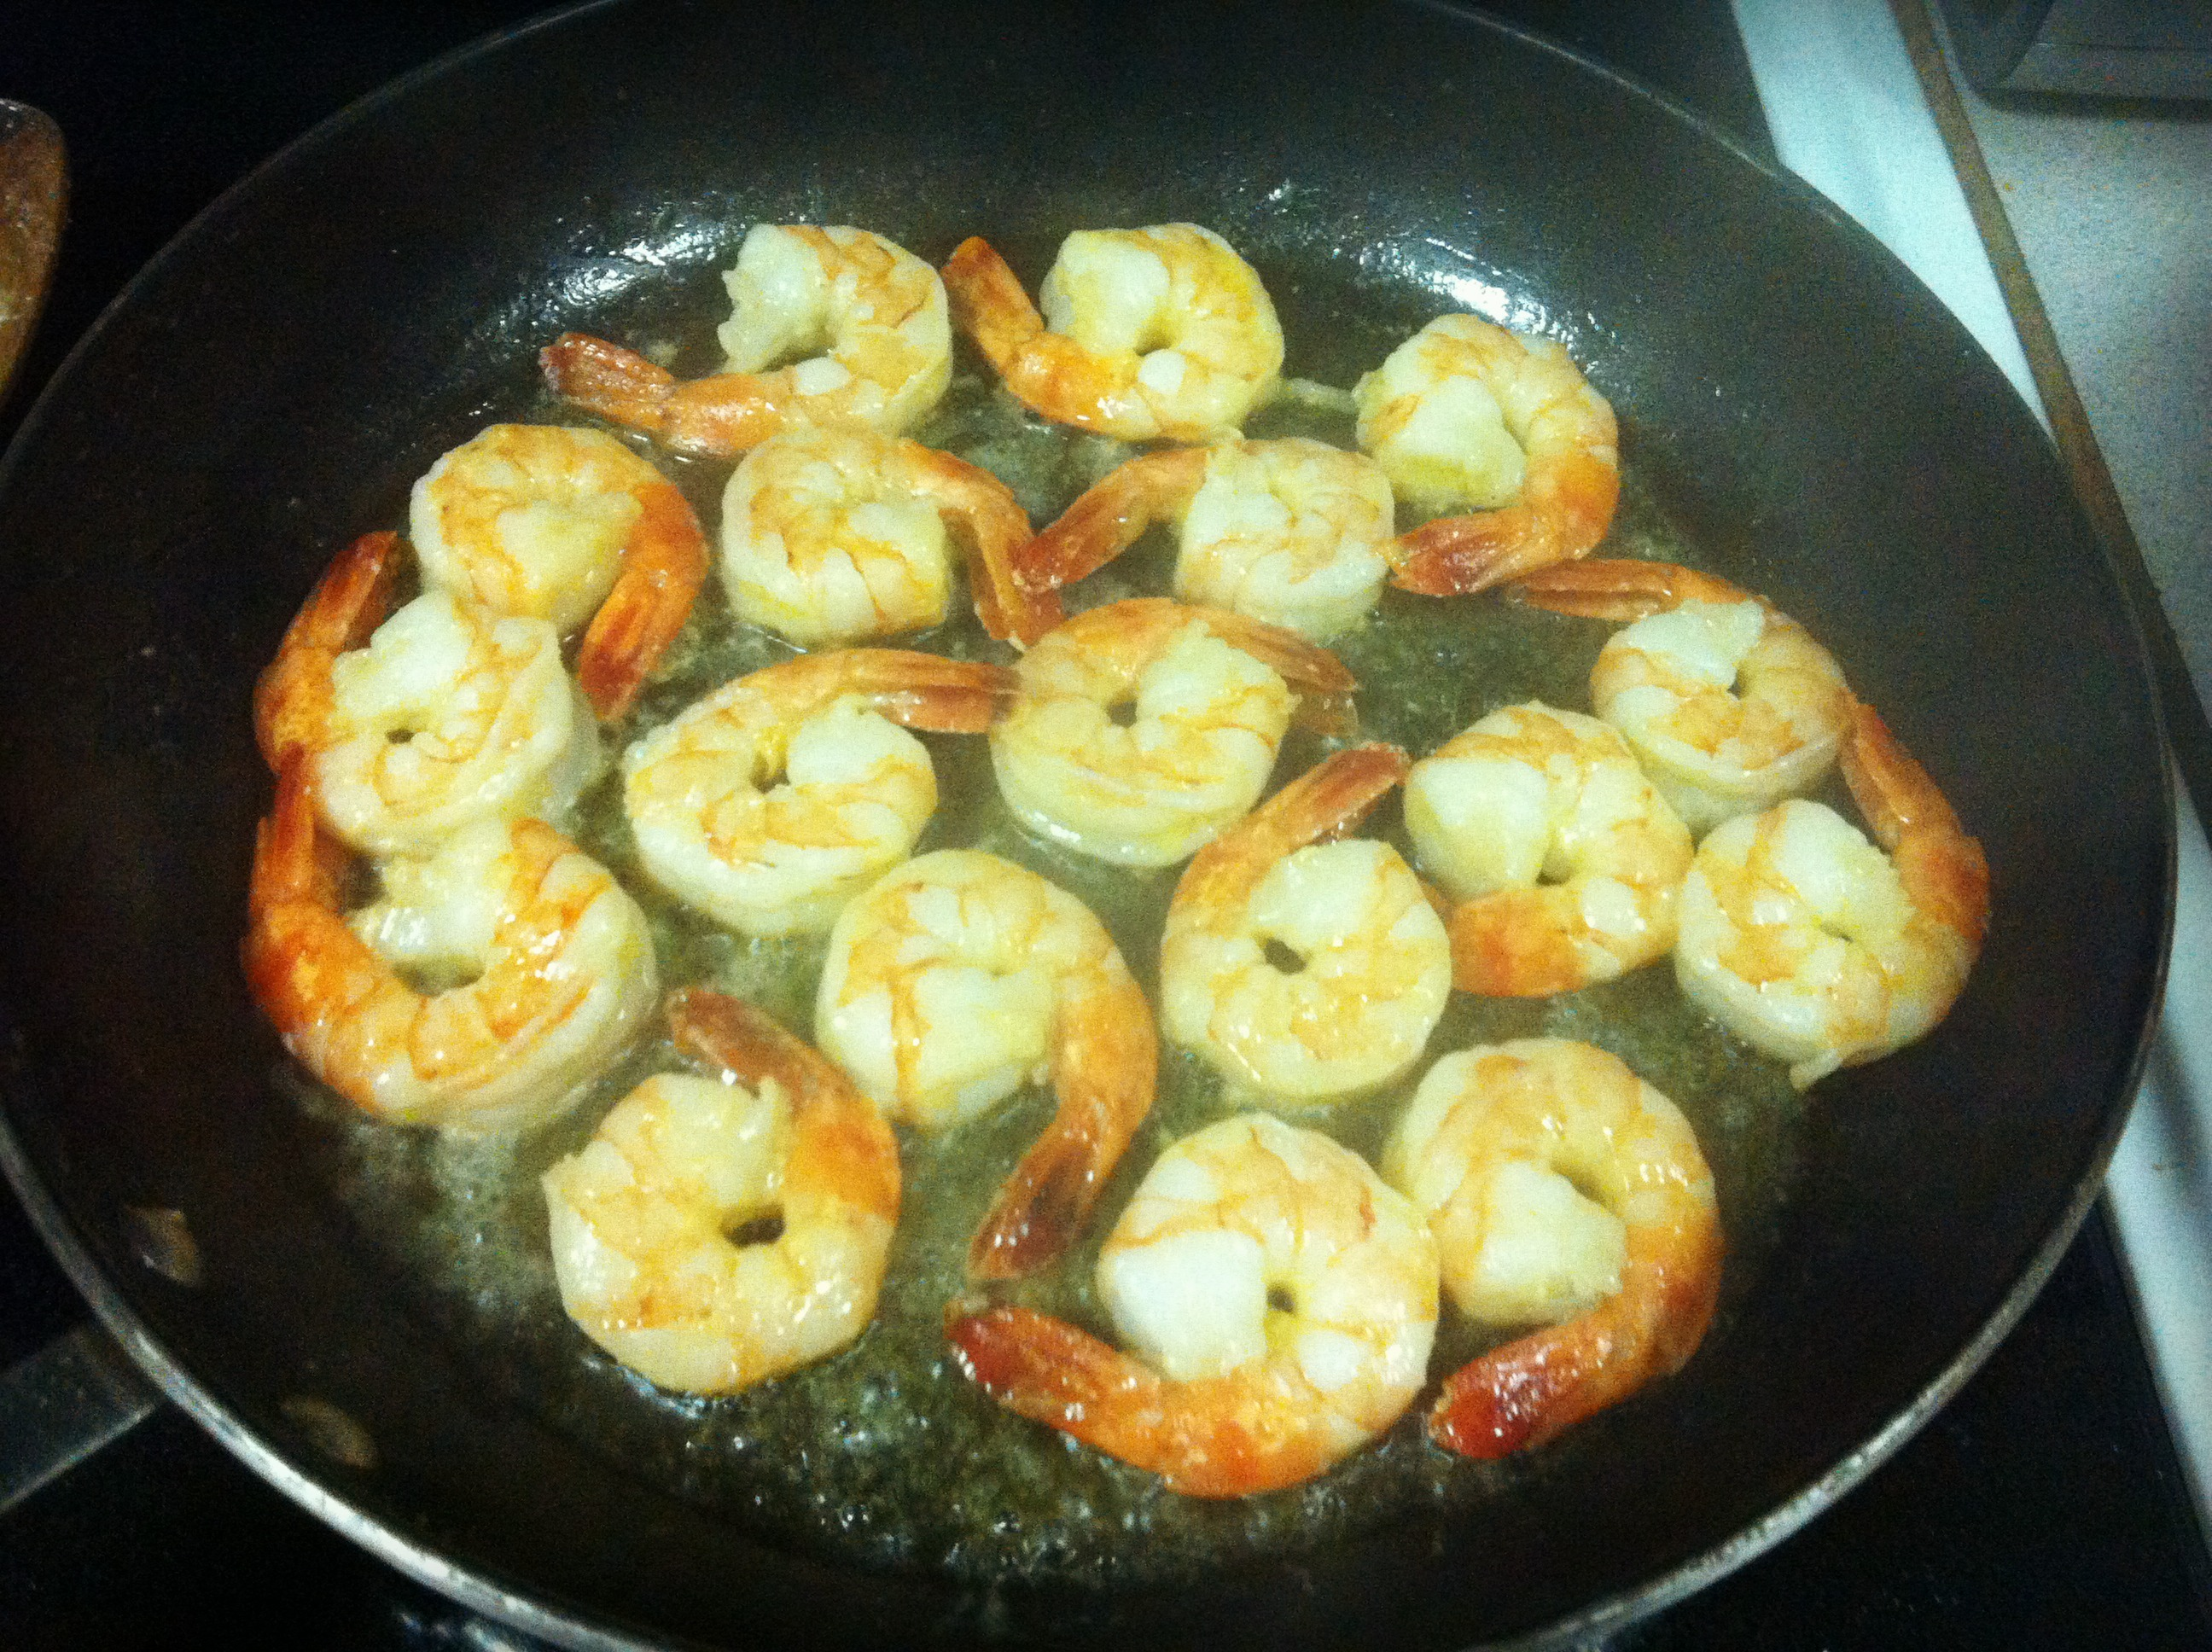 Transfer the shrimp to a bowl with a slotted spoon, while keeping the ...